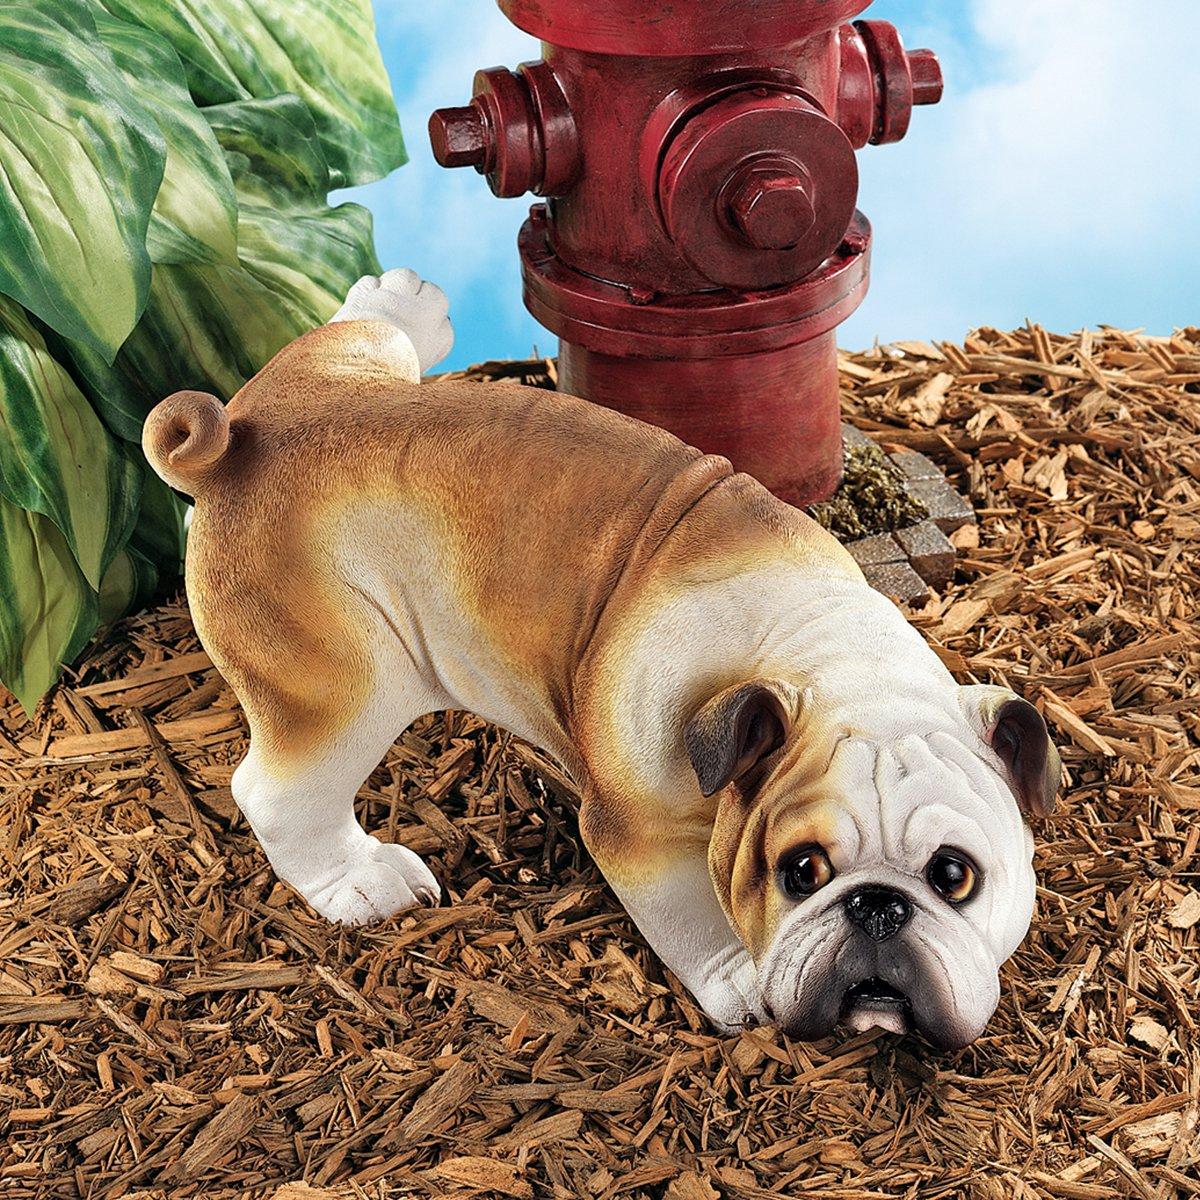 Dog Fire Hydrant The Smart Dog Guide